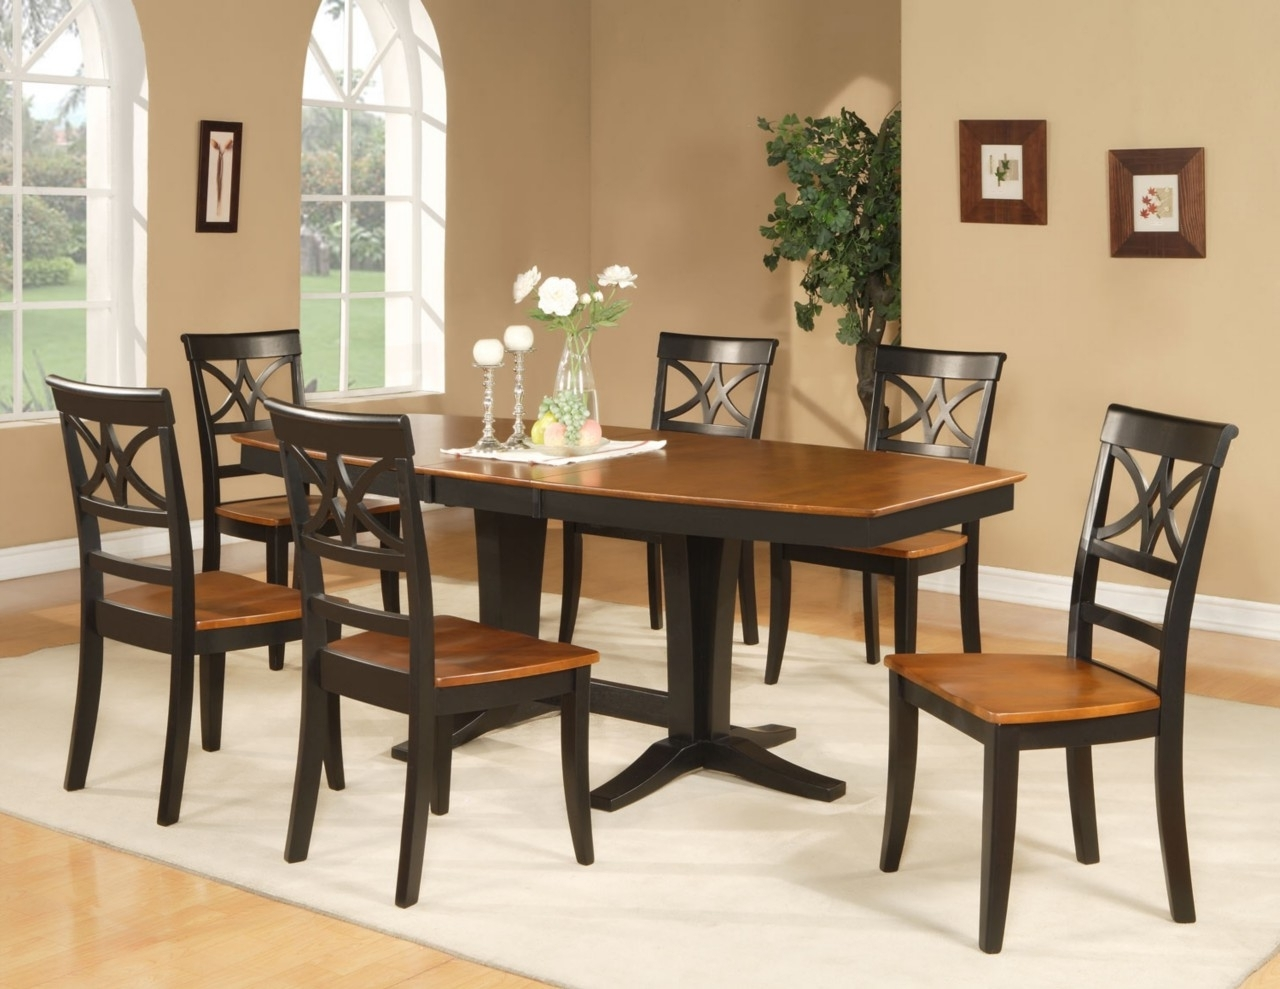 Best And Newest Extending Glass Dining Tables And 8 Chairs For Glass Top Dining Table With 8 Chairs – Glass Decorating Ideas (View 3 of 25)